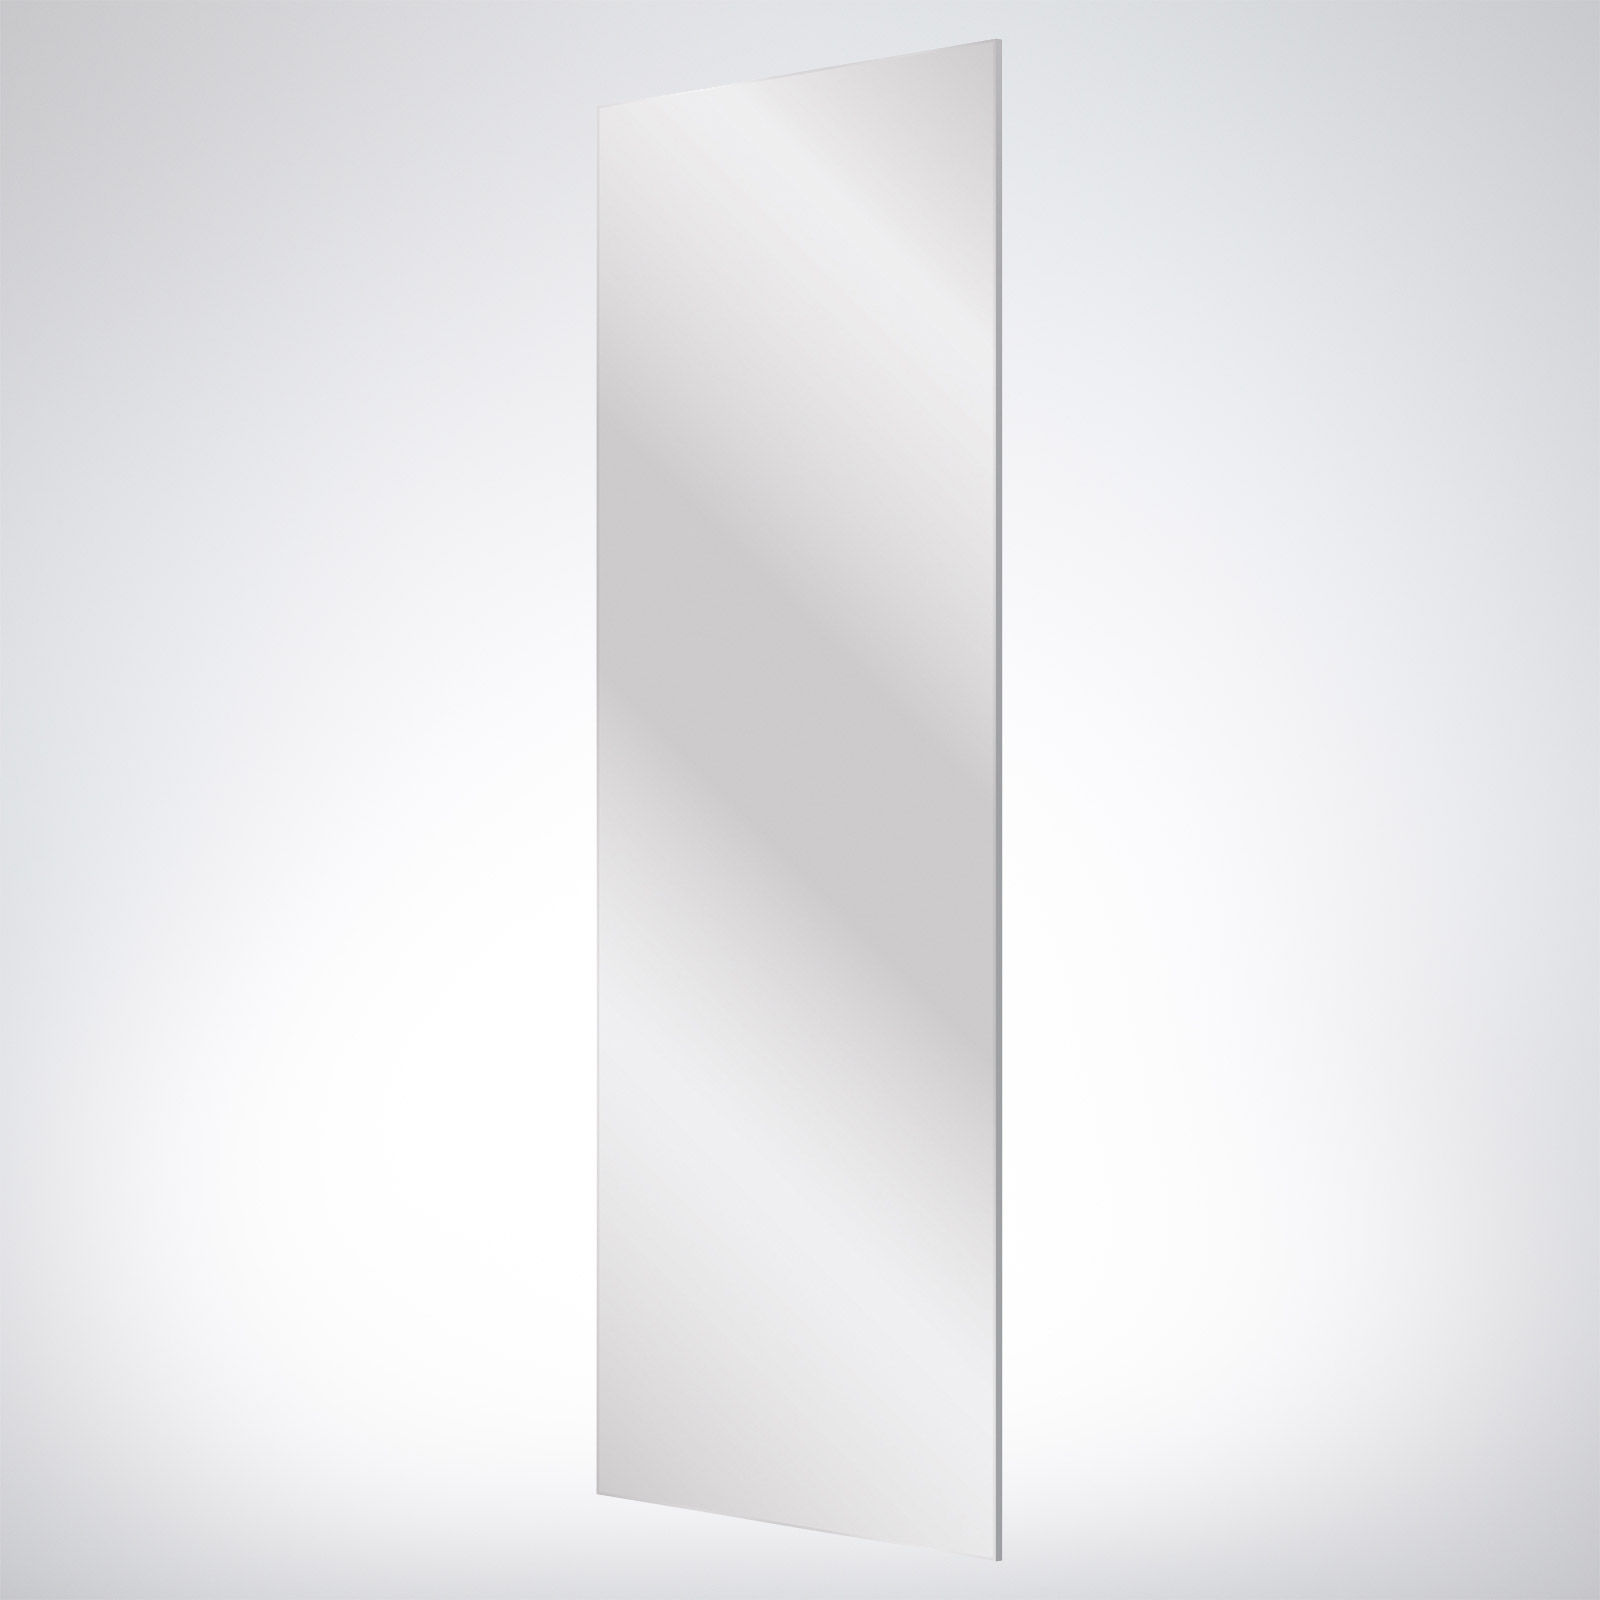 Flat Edge Mirror – 1200 x 350 x 5mm